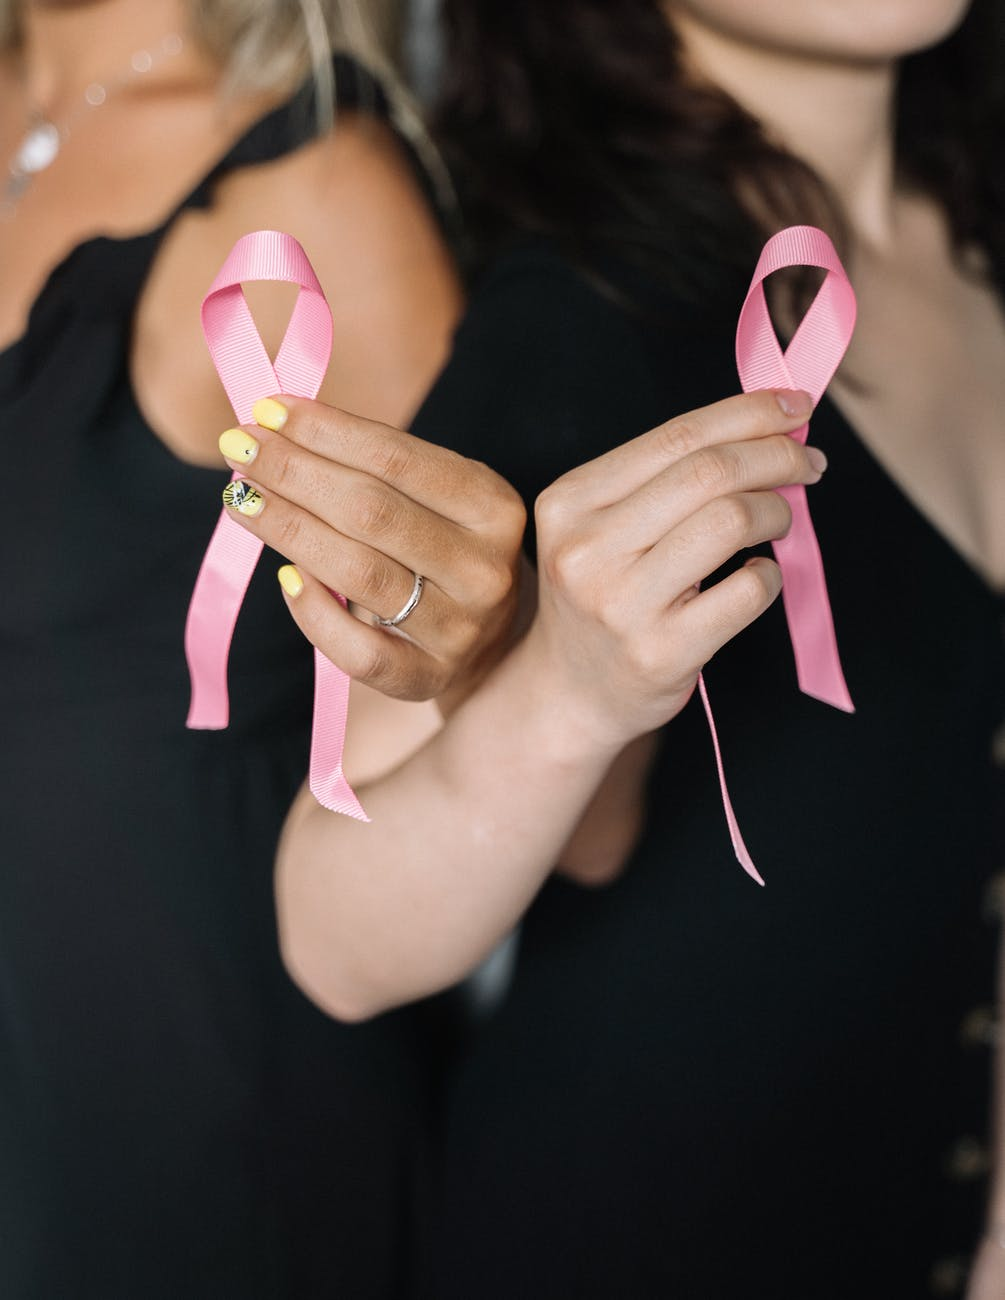 6 Things You Must Know About Breast Cancer